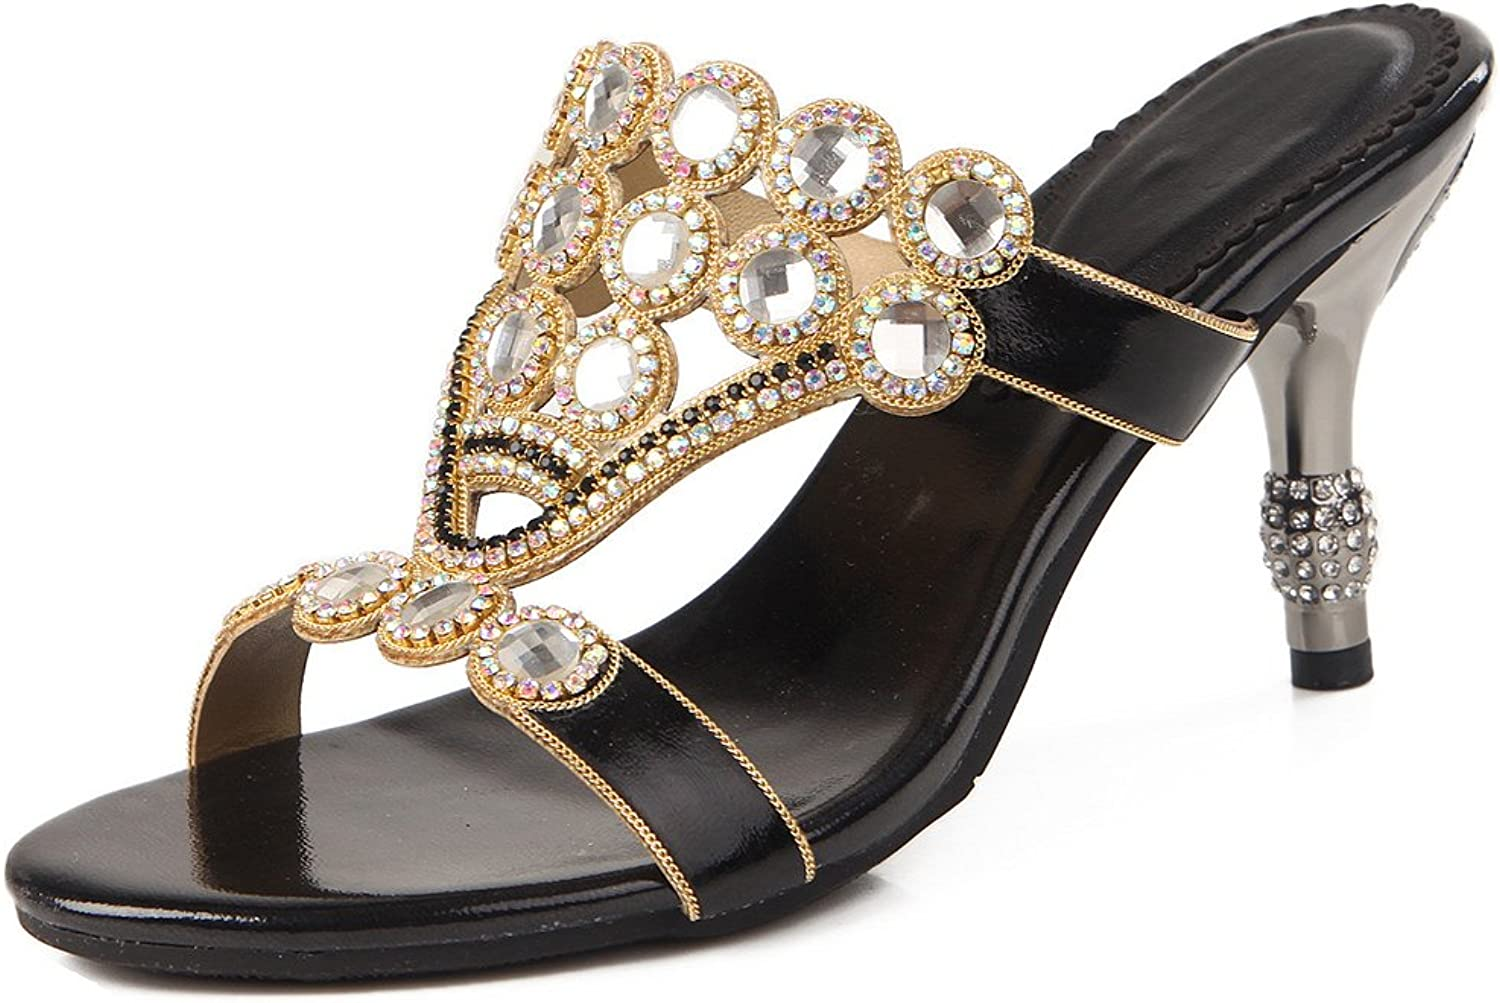 LizForm Women Slip On Heeled Sandals Cutout Rhinestone Wedding Evening Prom Party Sandals